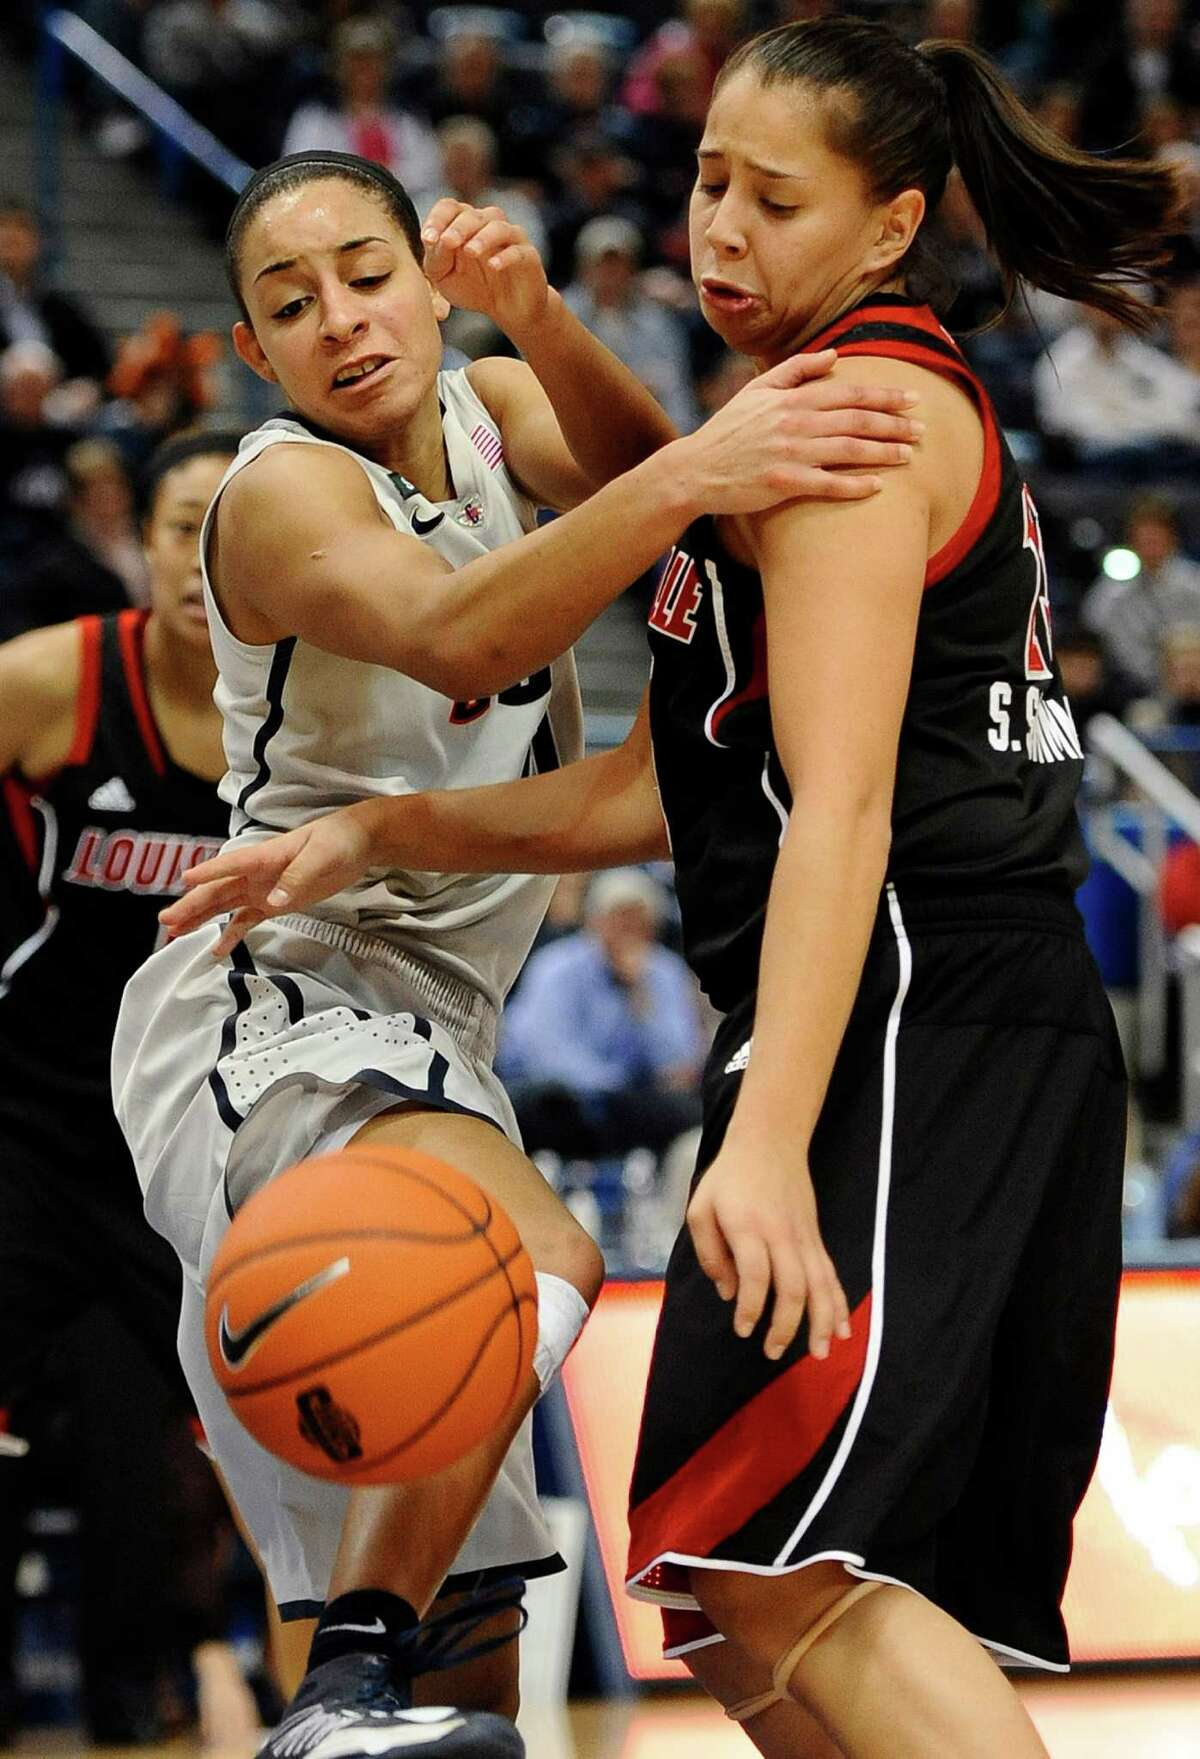 Connecticut's Bria Hartley, left, and Louisville's Shoni Schimmel, right, chase a loose ball during the second half of an NCAA college basketball game in Hartford, Conn., Tuesday, Jan. 15, 2013. (AP Photo/Jessica Hill)